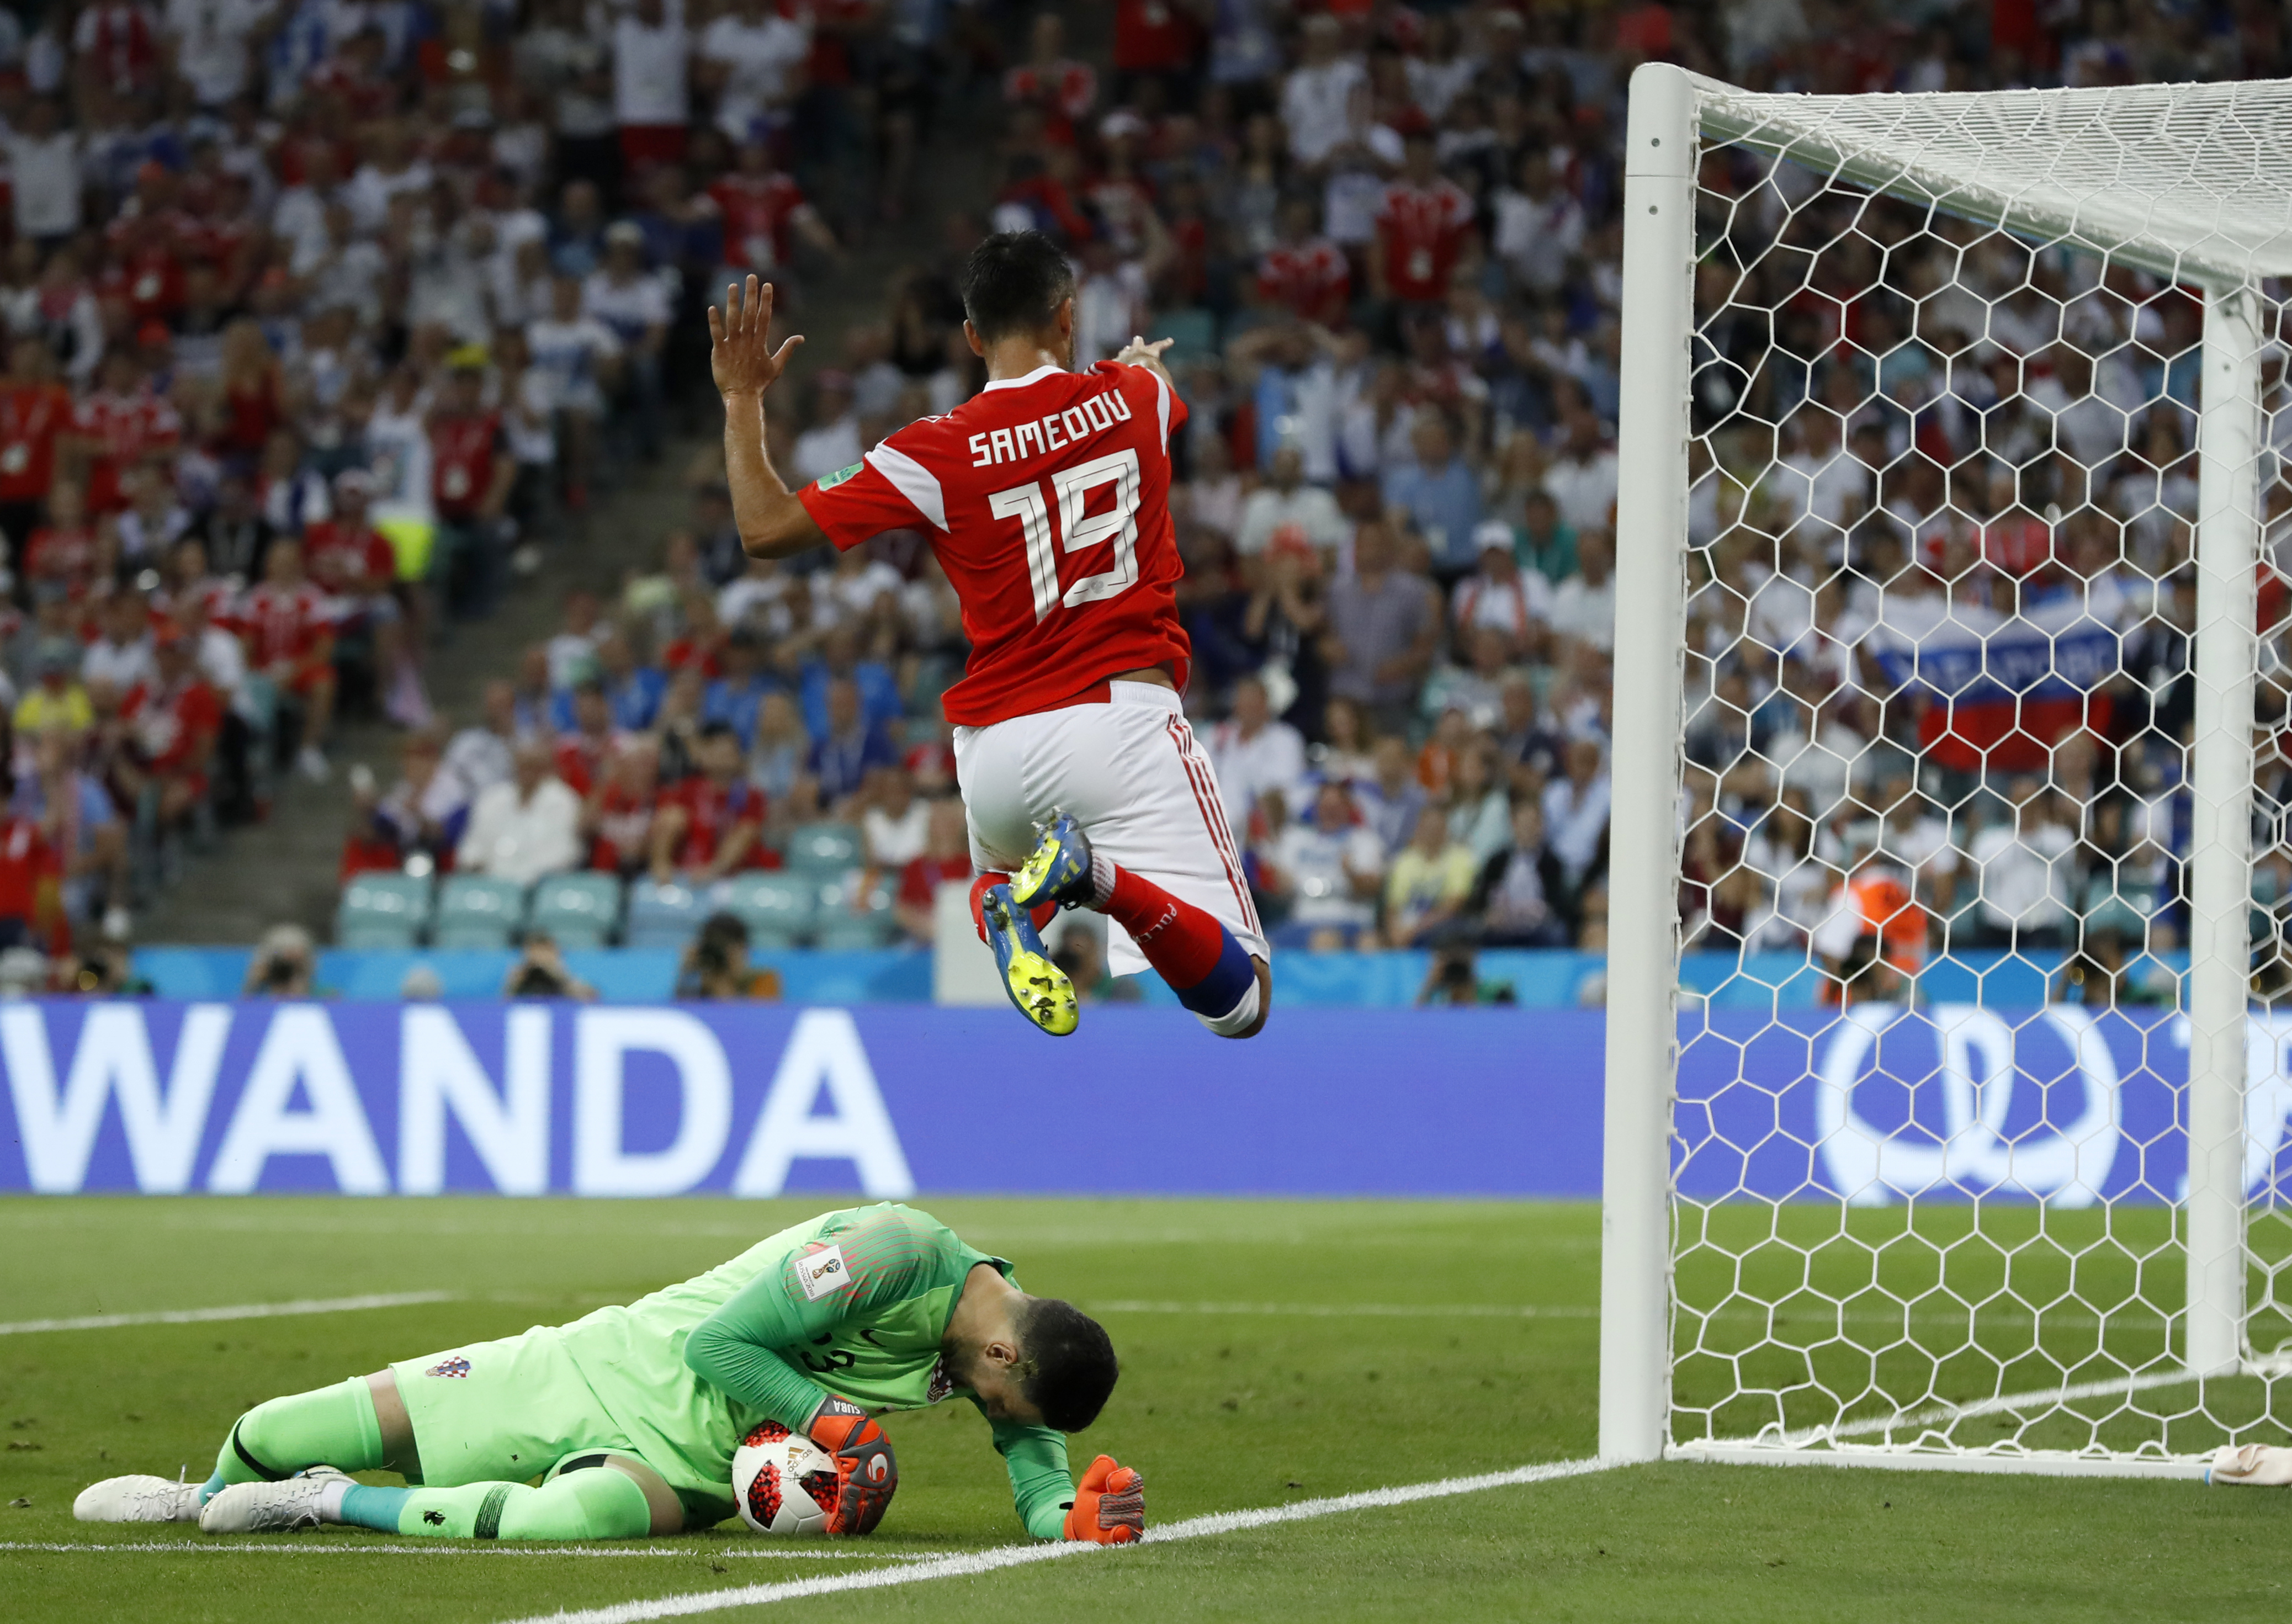 Croatia goalkeeper Danijel Subasic, left, makes a save in front of Russia's Alexander Samedov during the quarterfinal match between Russia and Croatia.